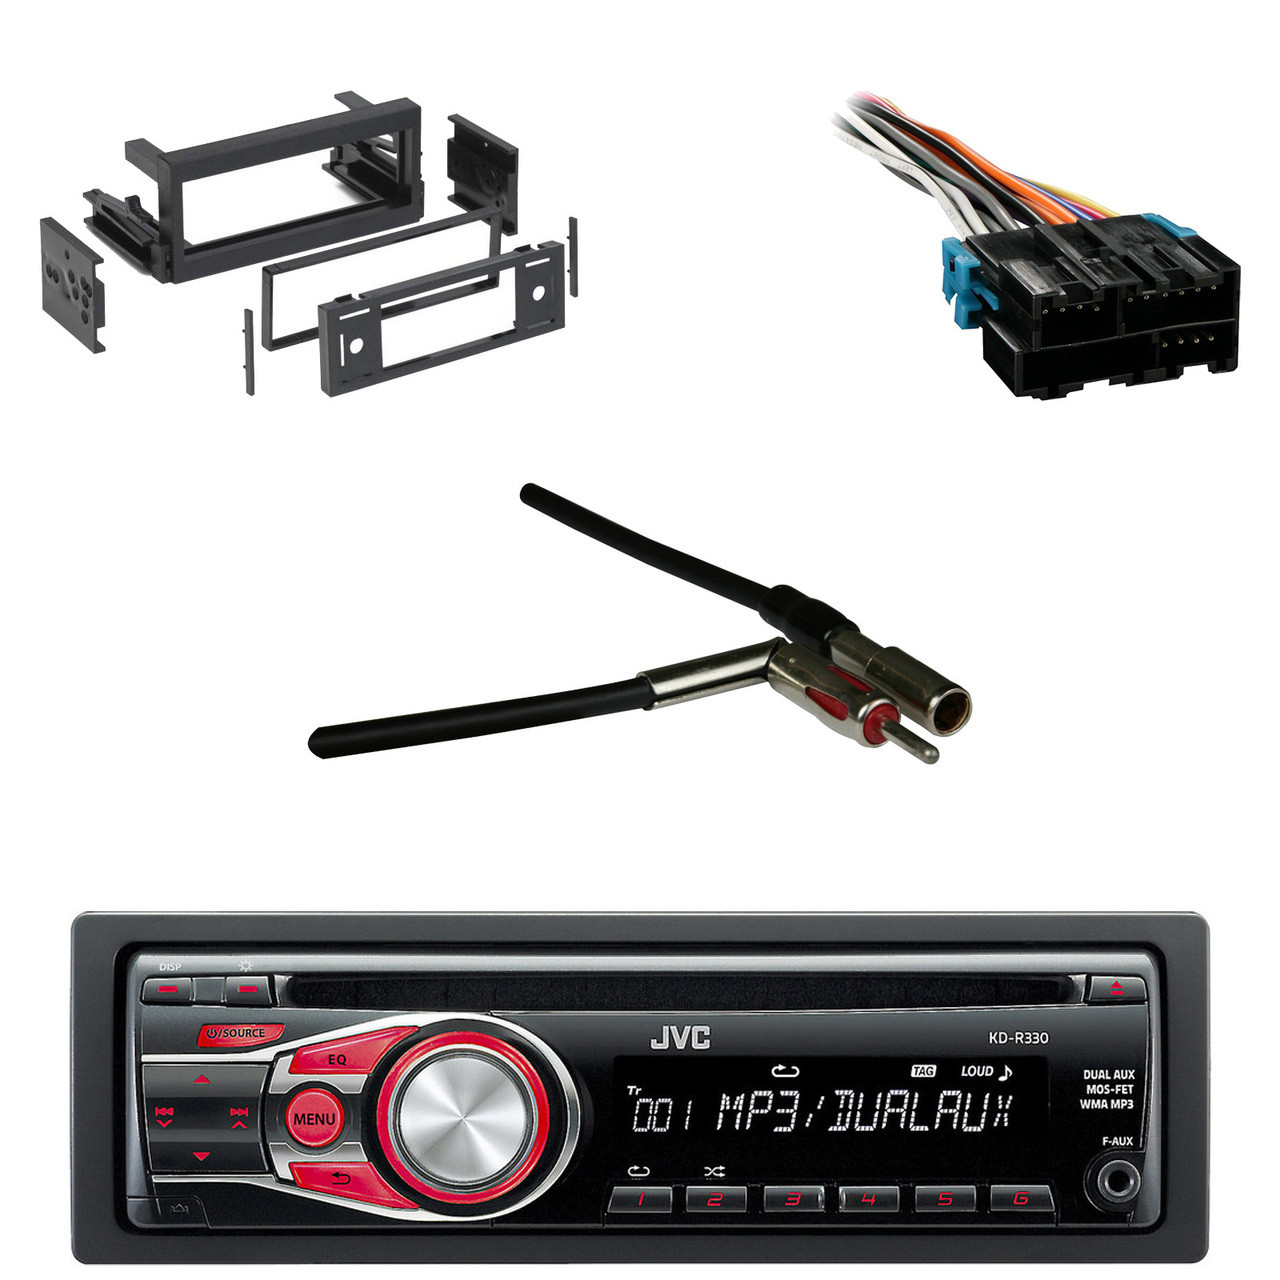 car equalizer wiring harness adapter general wiring diagram datacar equalizer wiring harness adapter wiring diagrams simple [ 1280 x 1280 Pixel ]